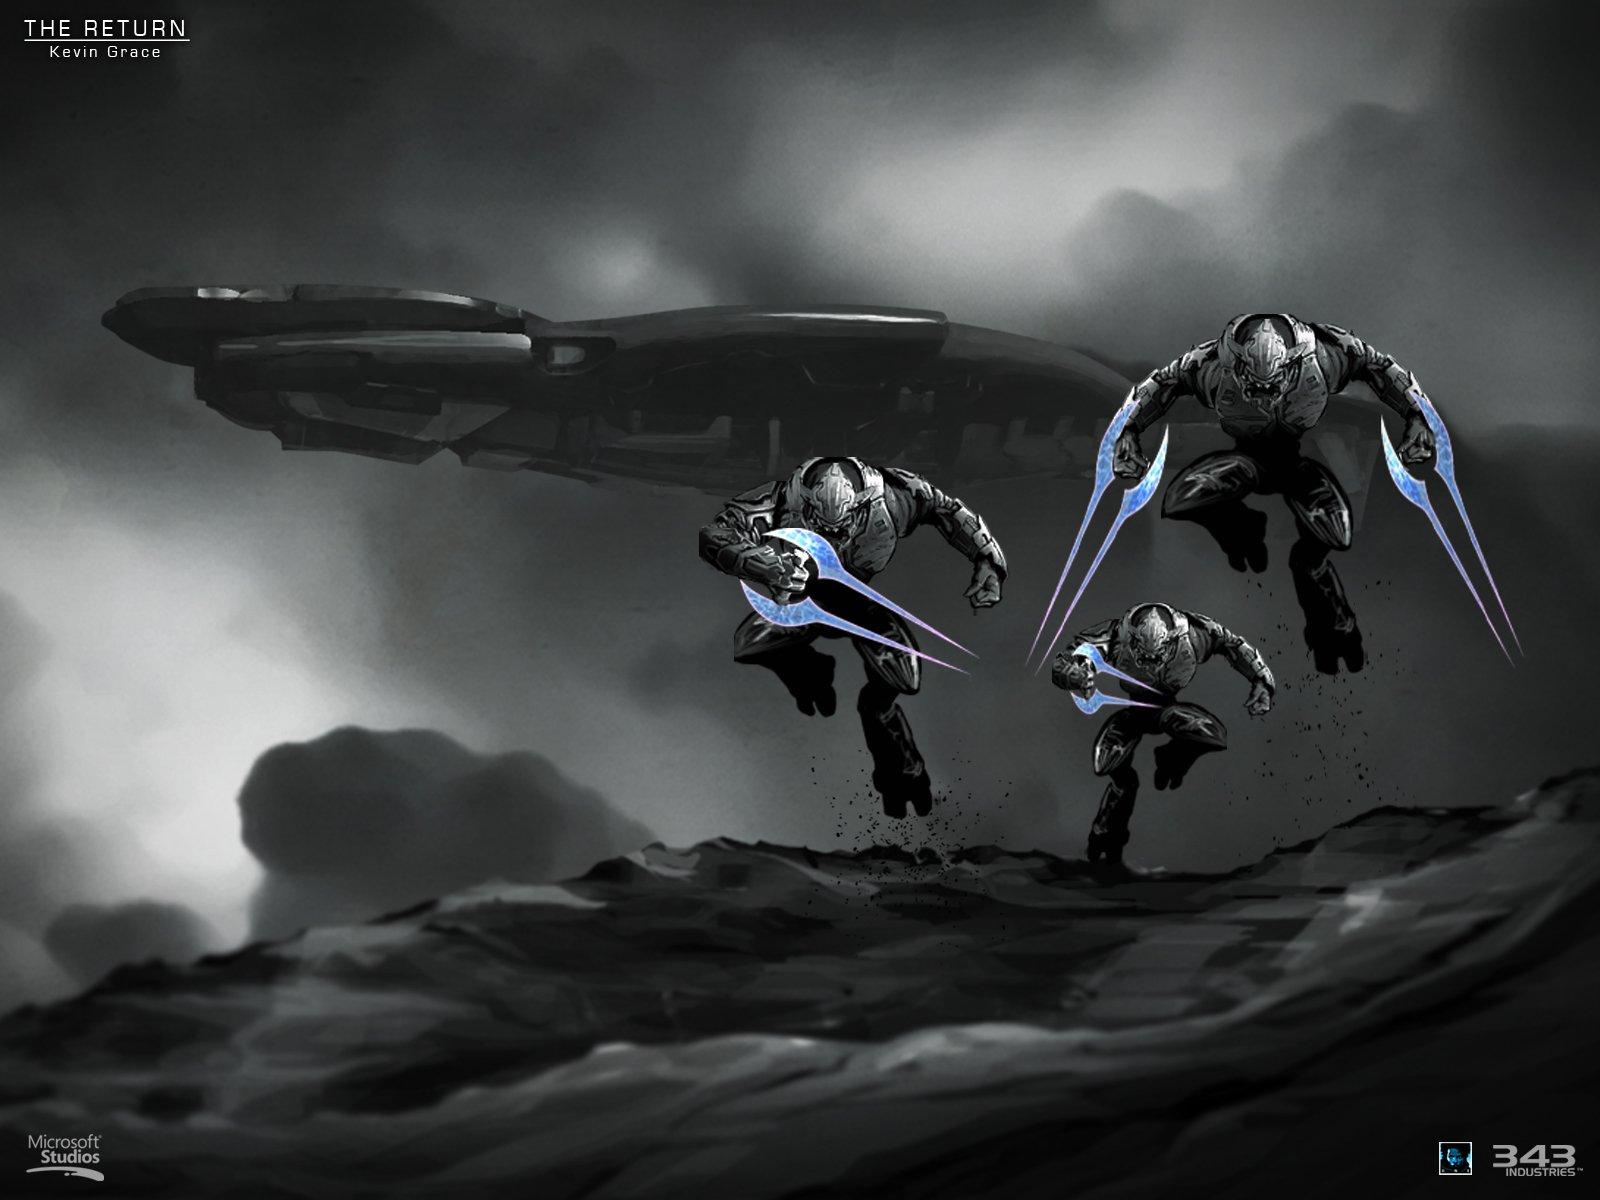 halo 2 anniversary wallpaper hd wallpapersafari